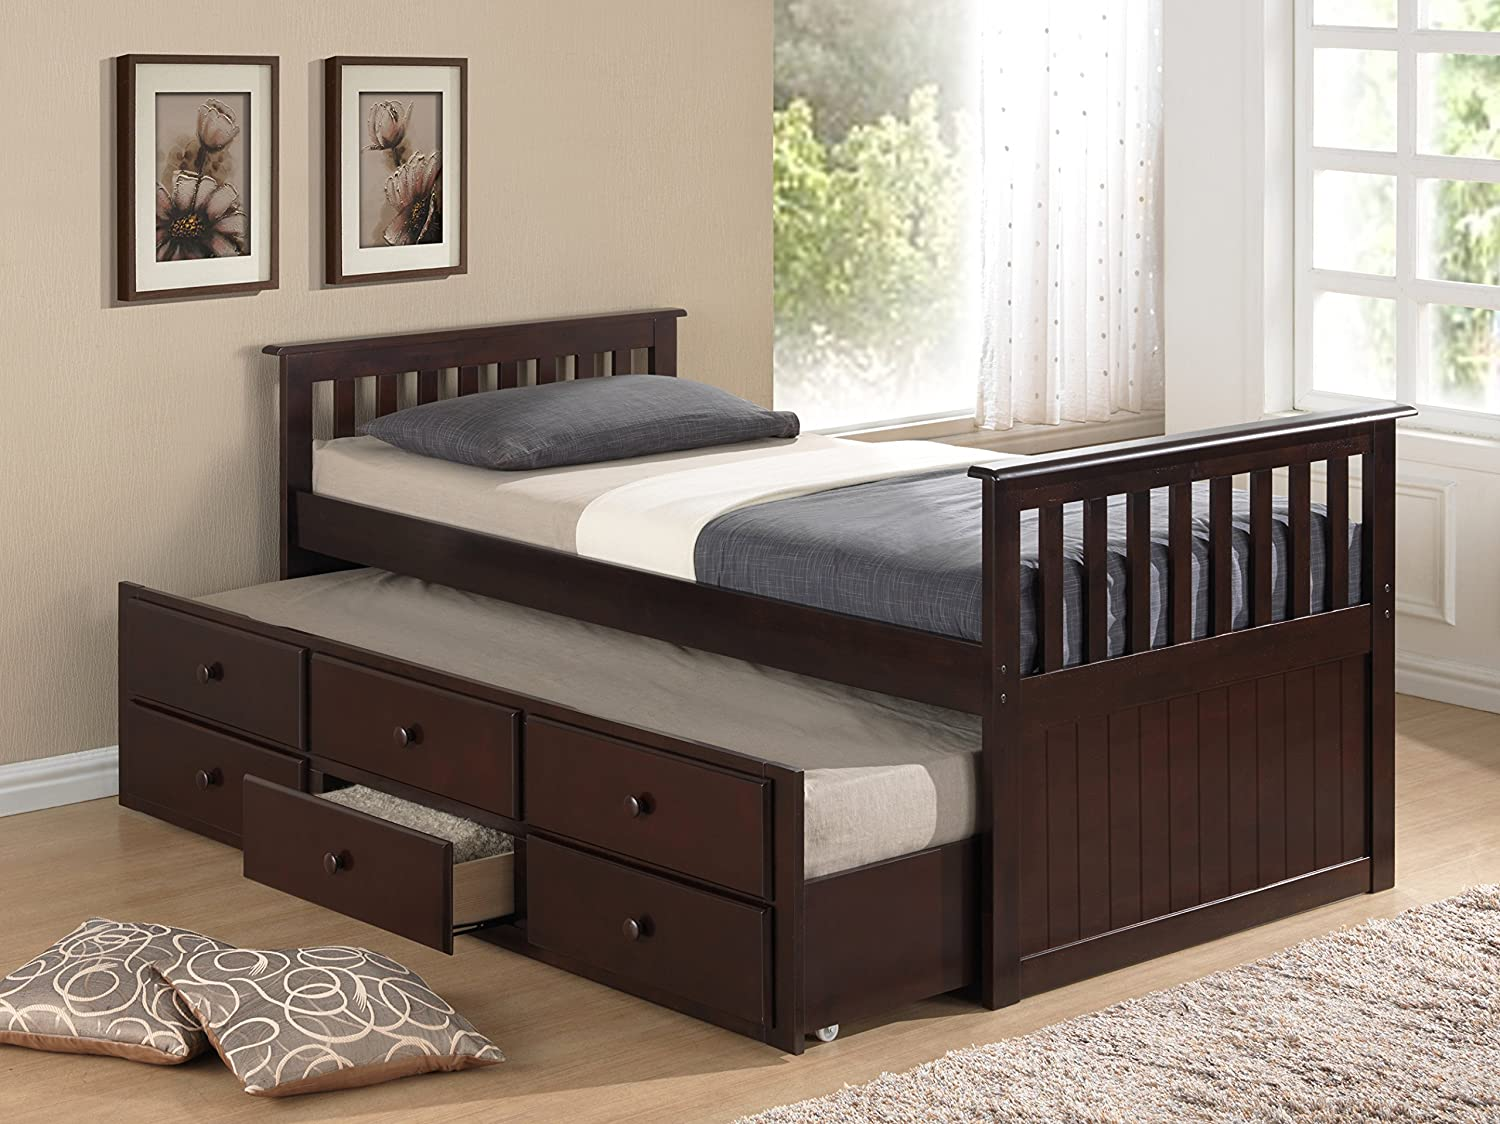 Amazon Broyhill Kids Marco Island Captains Bed With Trundle And Drawers Twin Espresso Sized Mattress Not Included Bunk Alternative